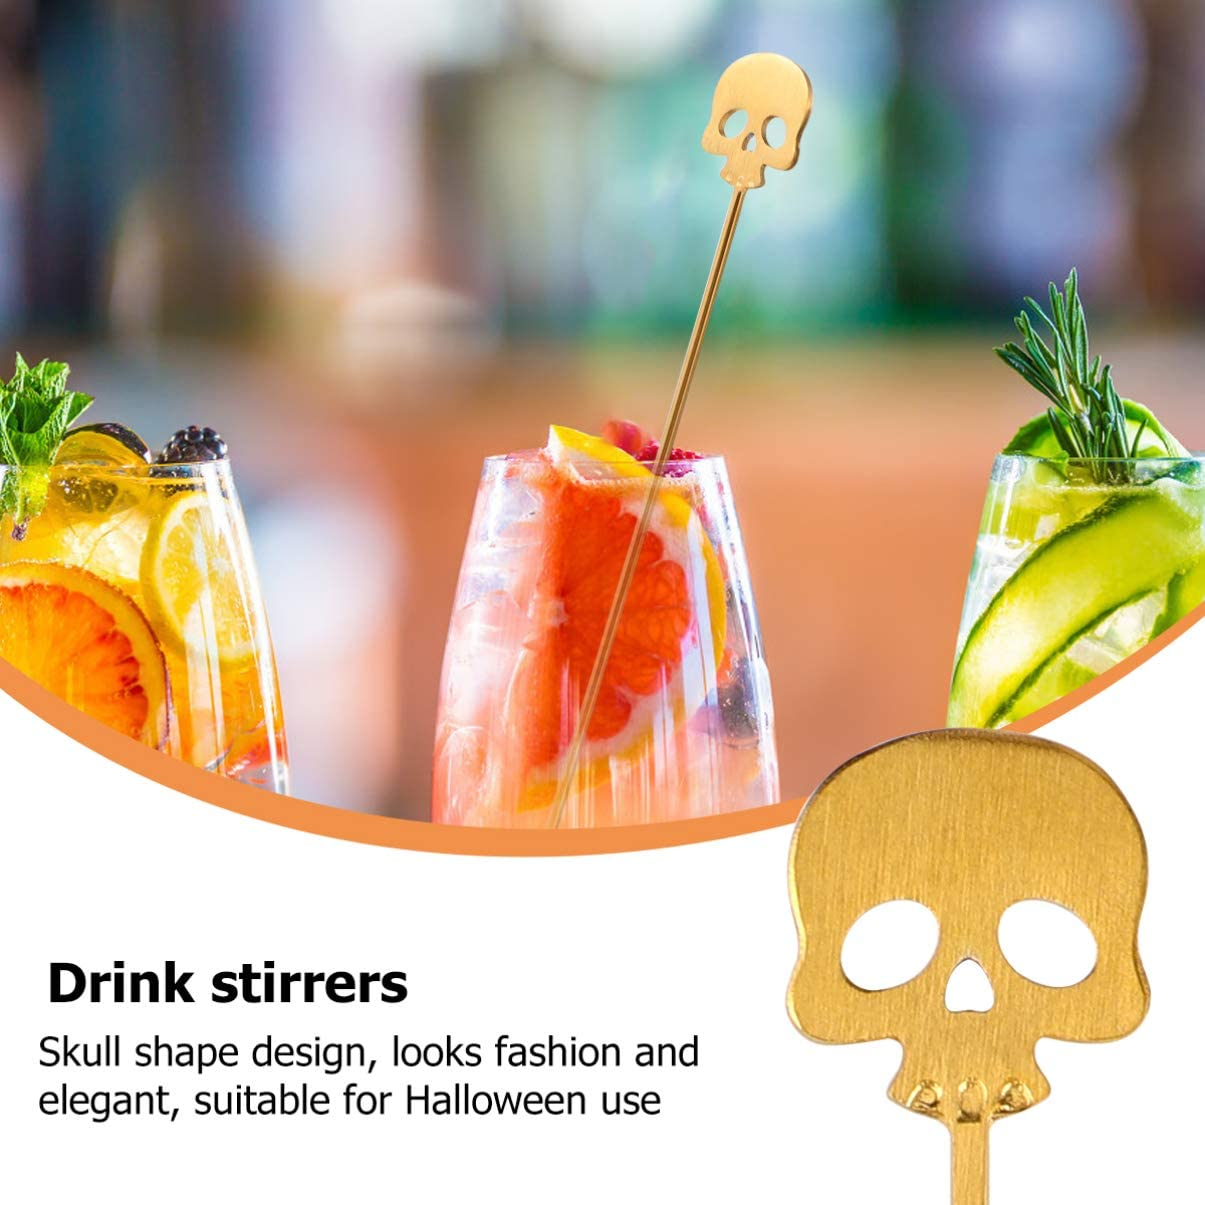 Amosfun 4pcs Halloween Stirrers Swizzle Sticks Stainless Steel Coffee Stirrers Cocktail Drink Swizzle Stick Skull Shape Mixing Stick for Home Bar Office Golden